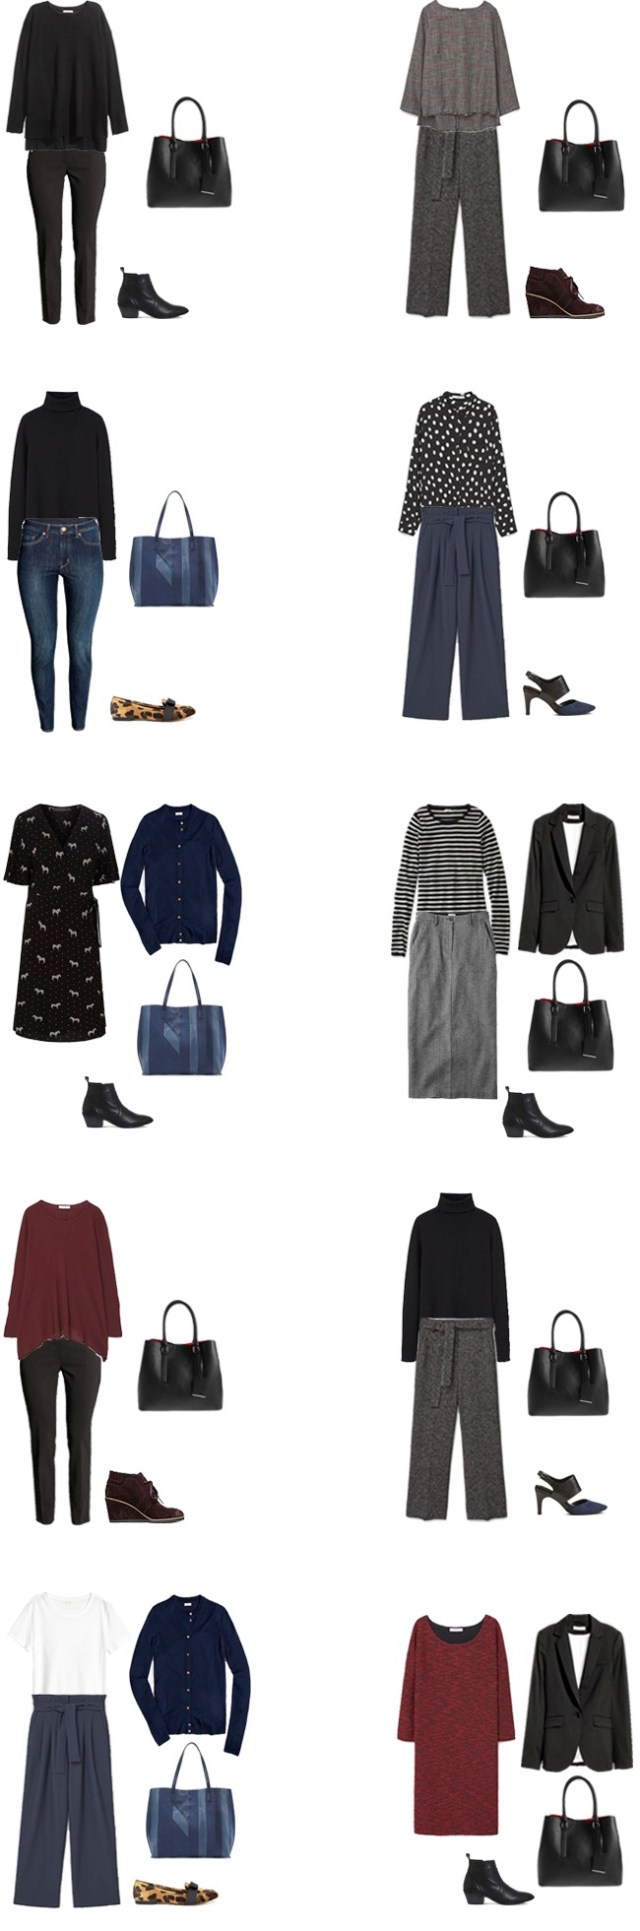 Fall/winter work capsule wardrobe business casual outfit options 11-20 #capsule #capsulewardrobe #workcapsule #workwear